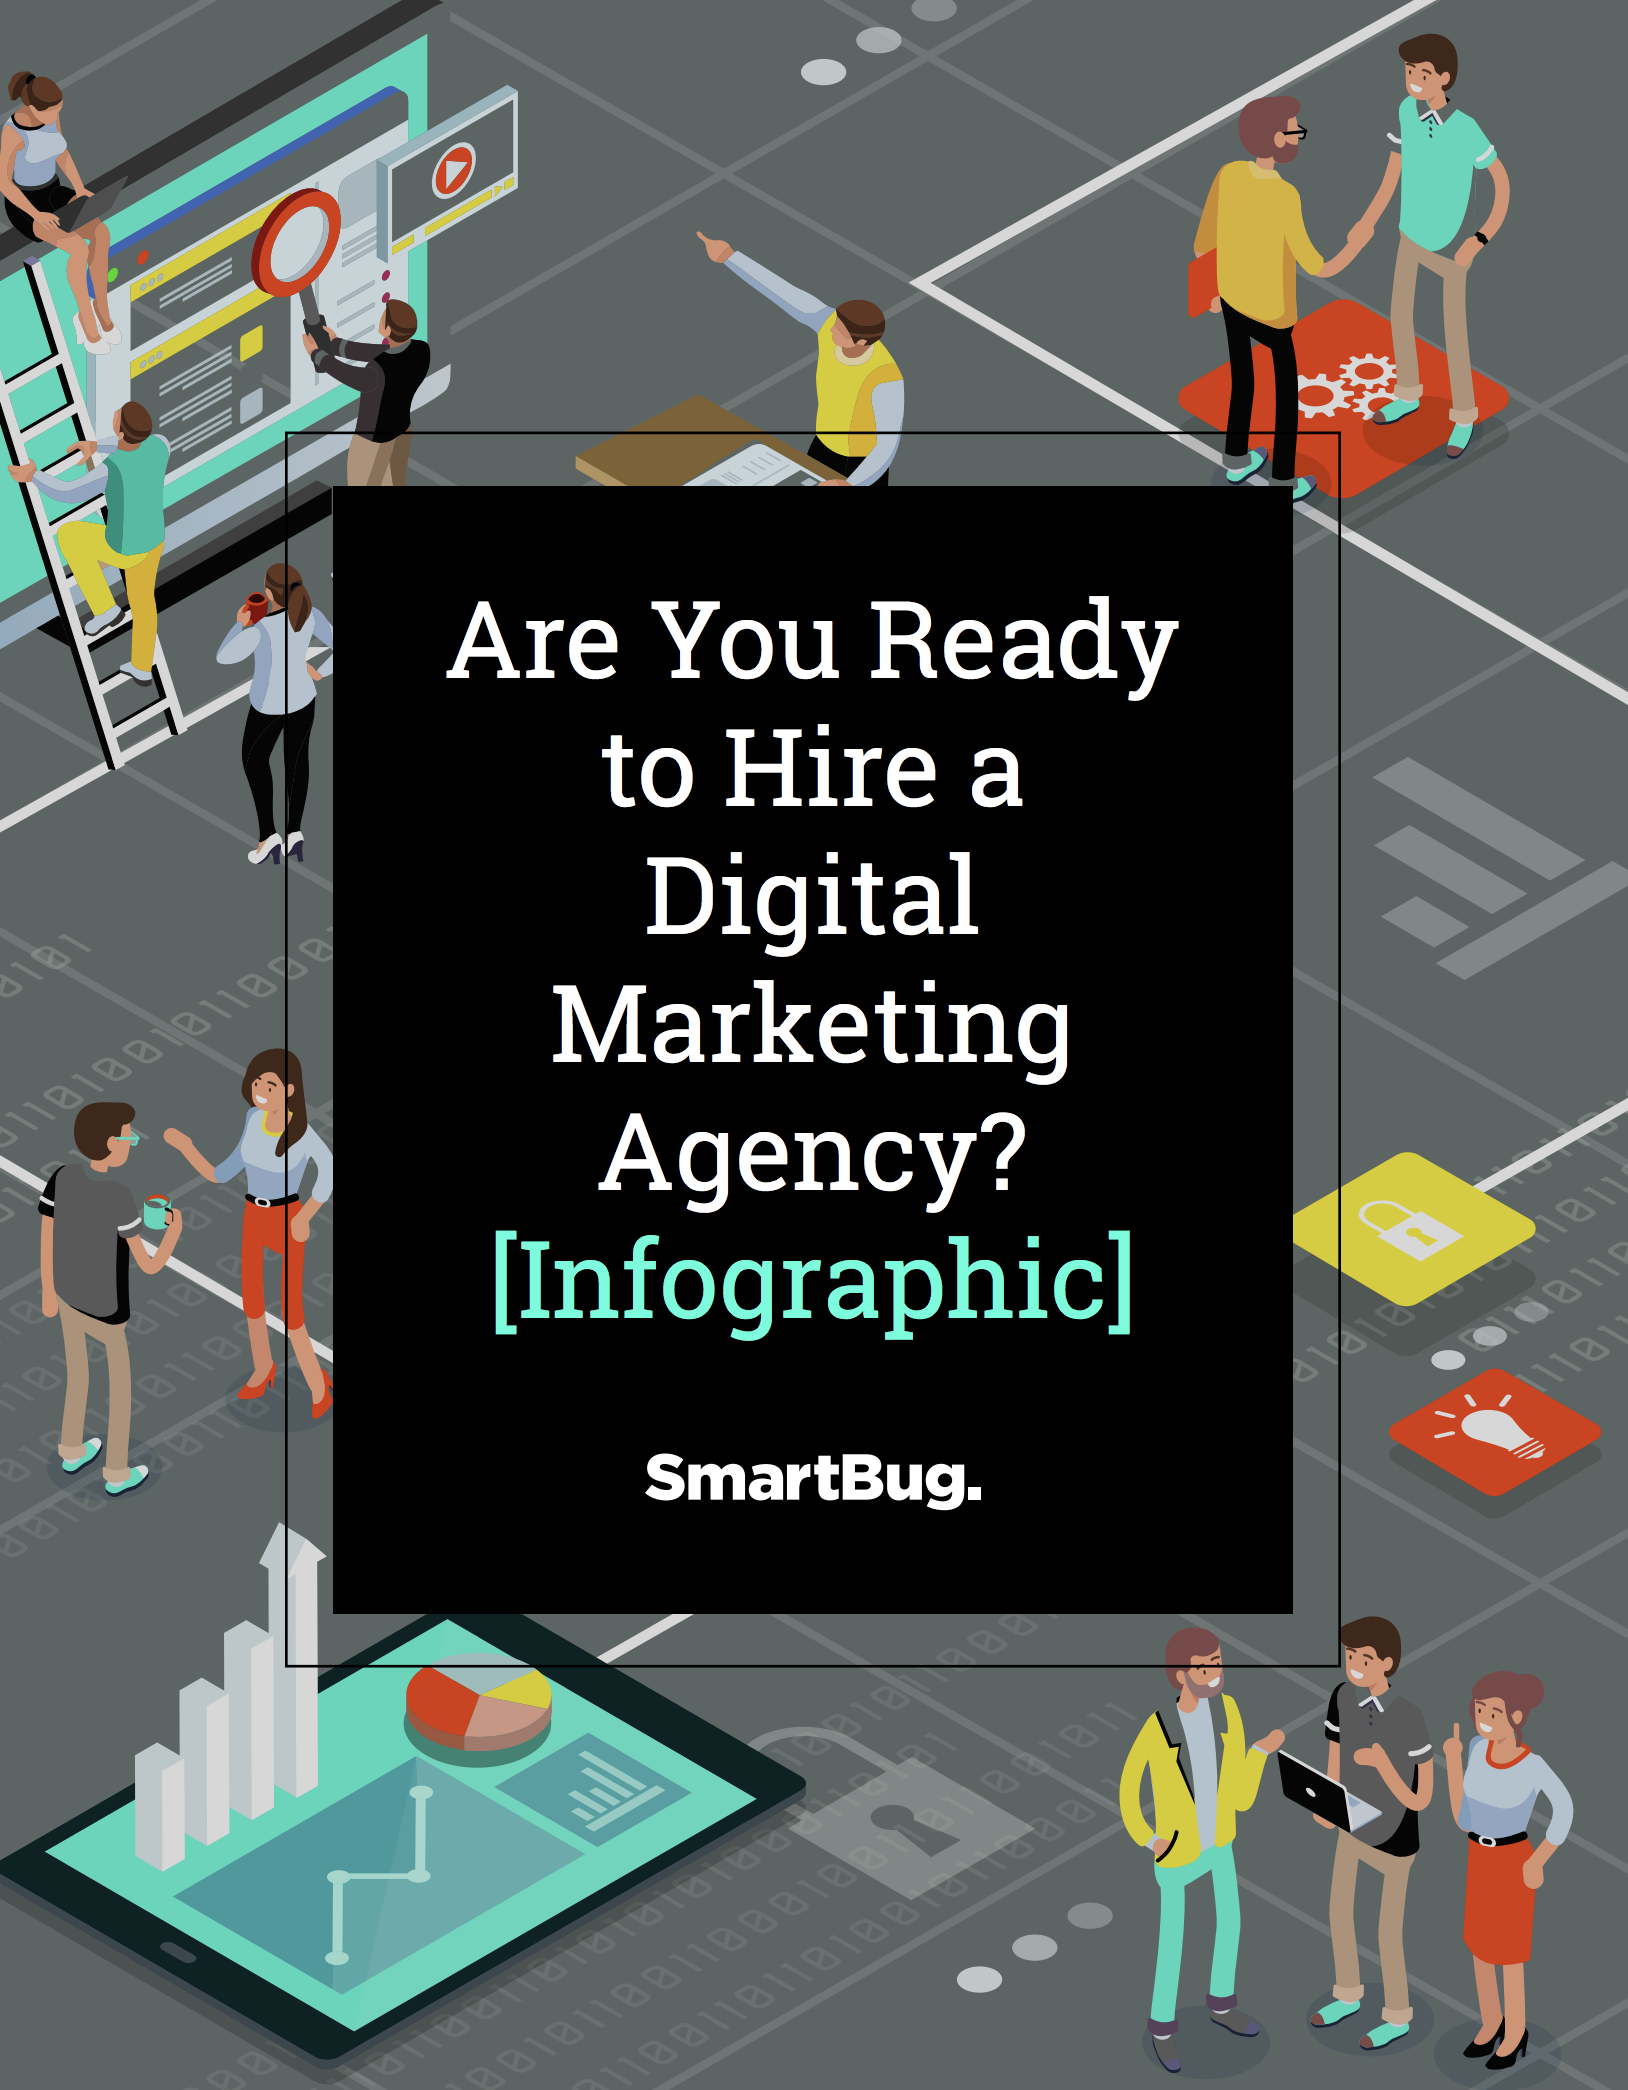 Are You Ready to Hire a Digital Marketing Agency?